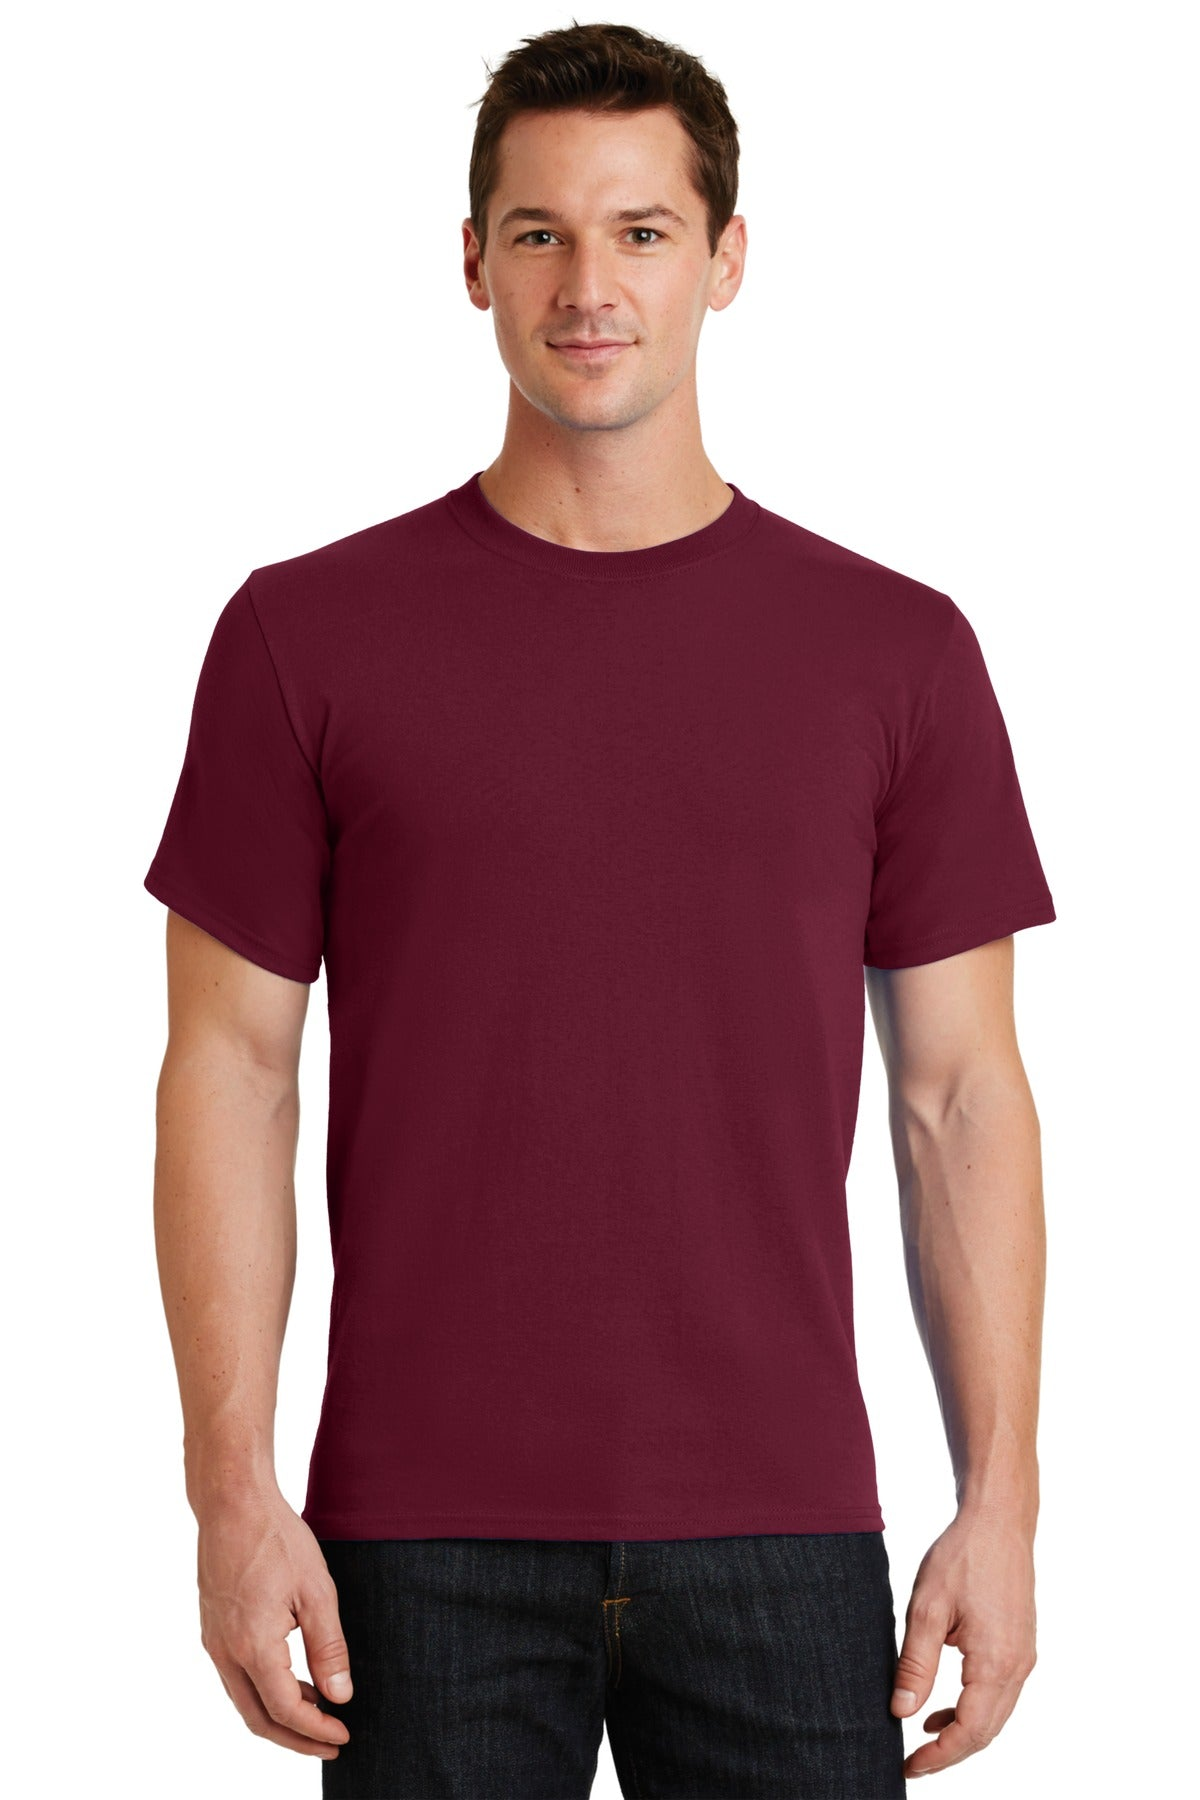 Cardinal Port & Company - Essential T-Shirt